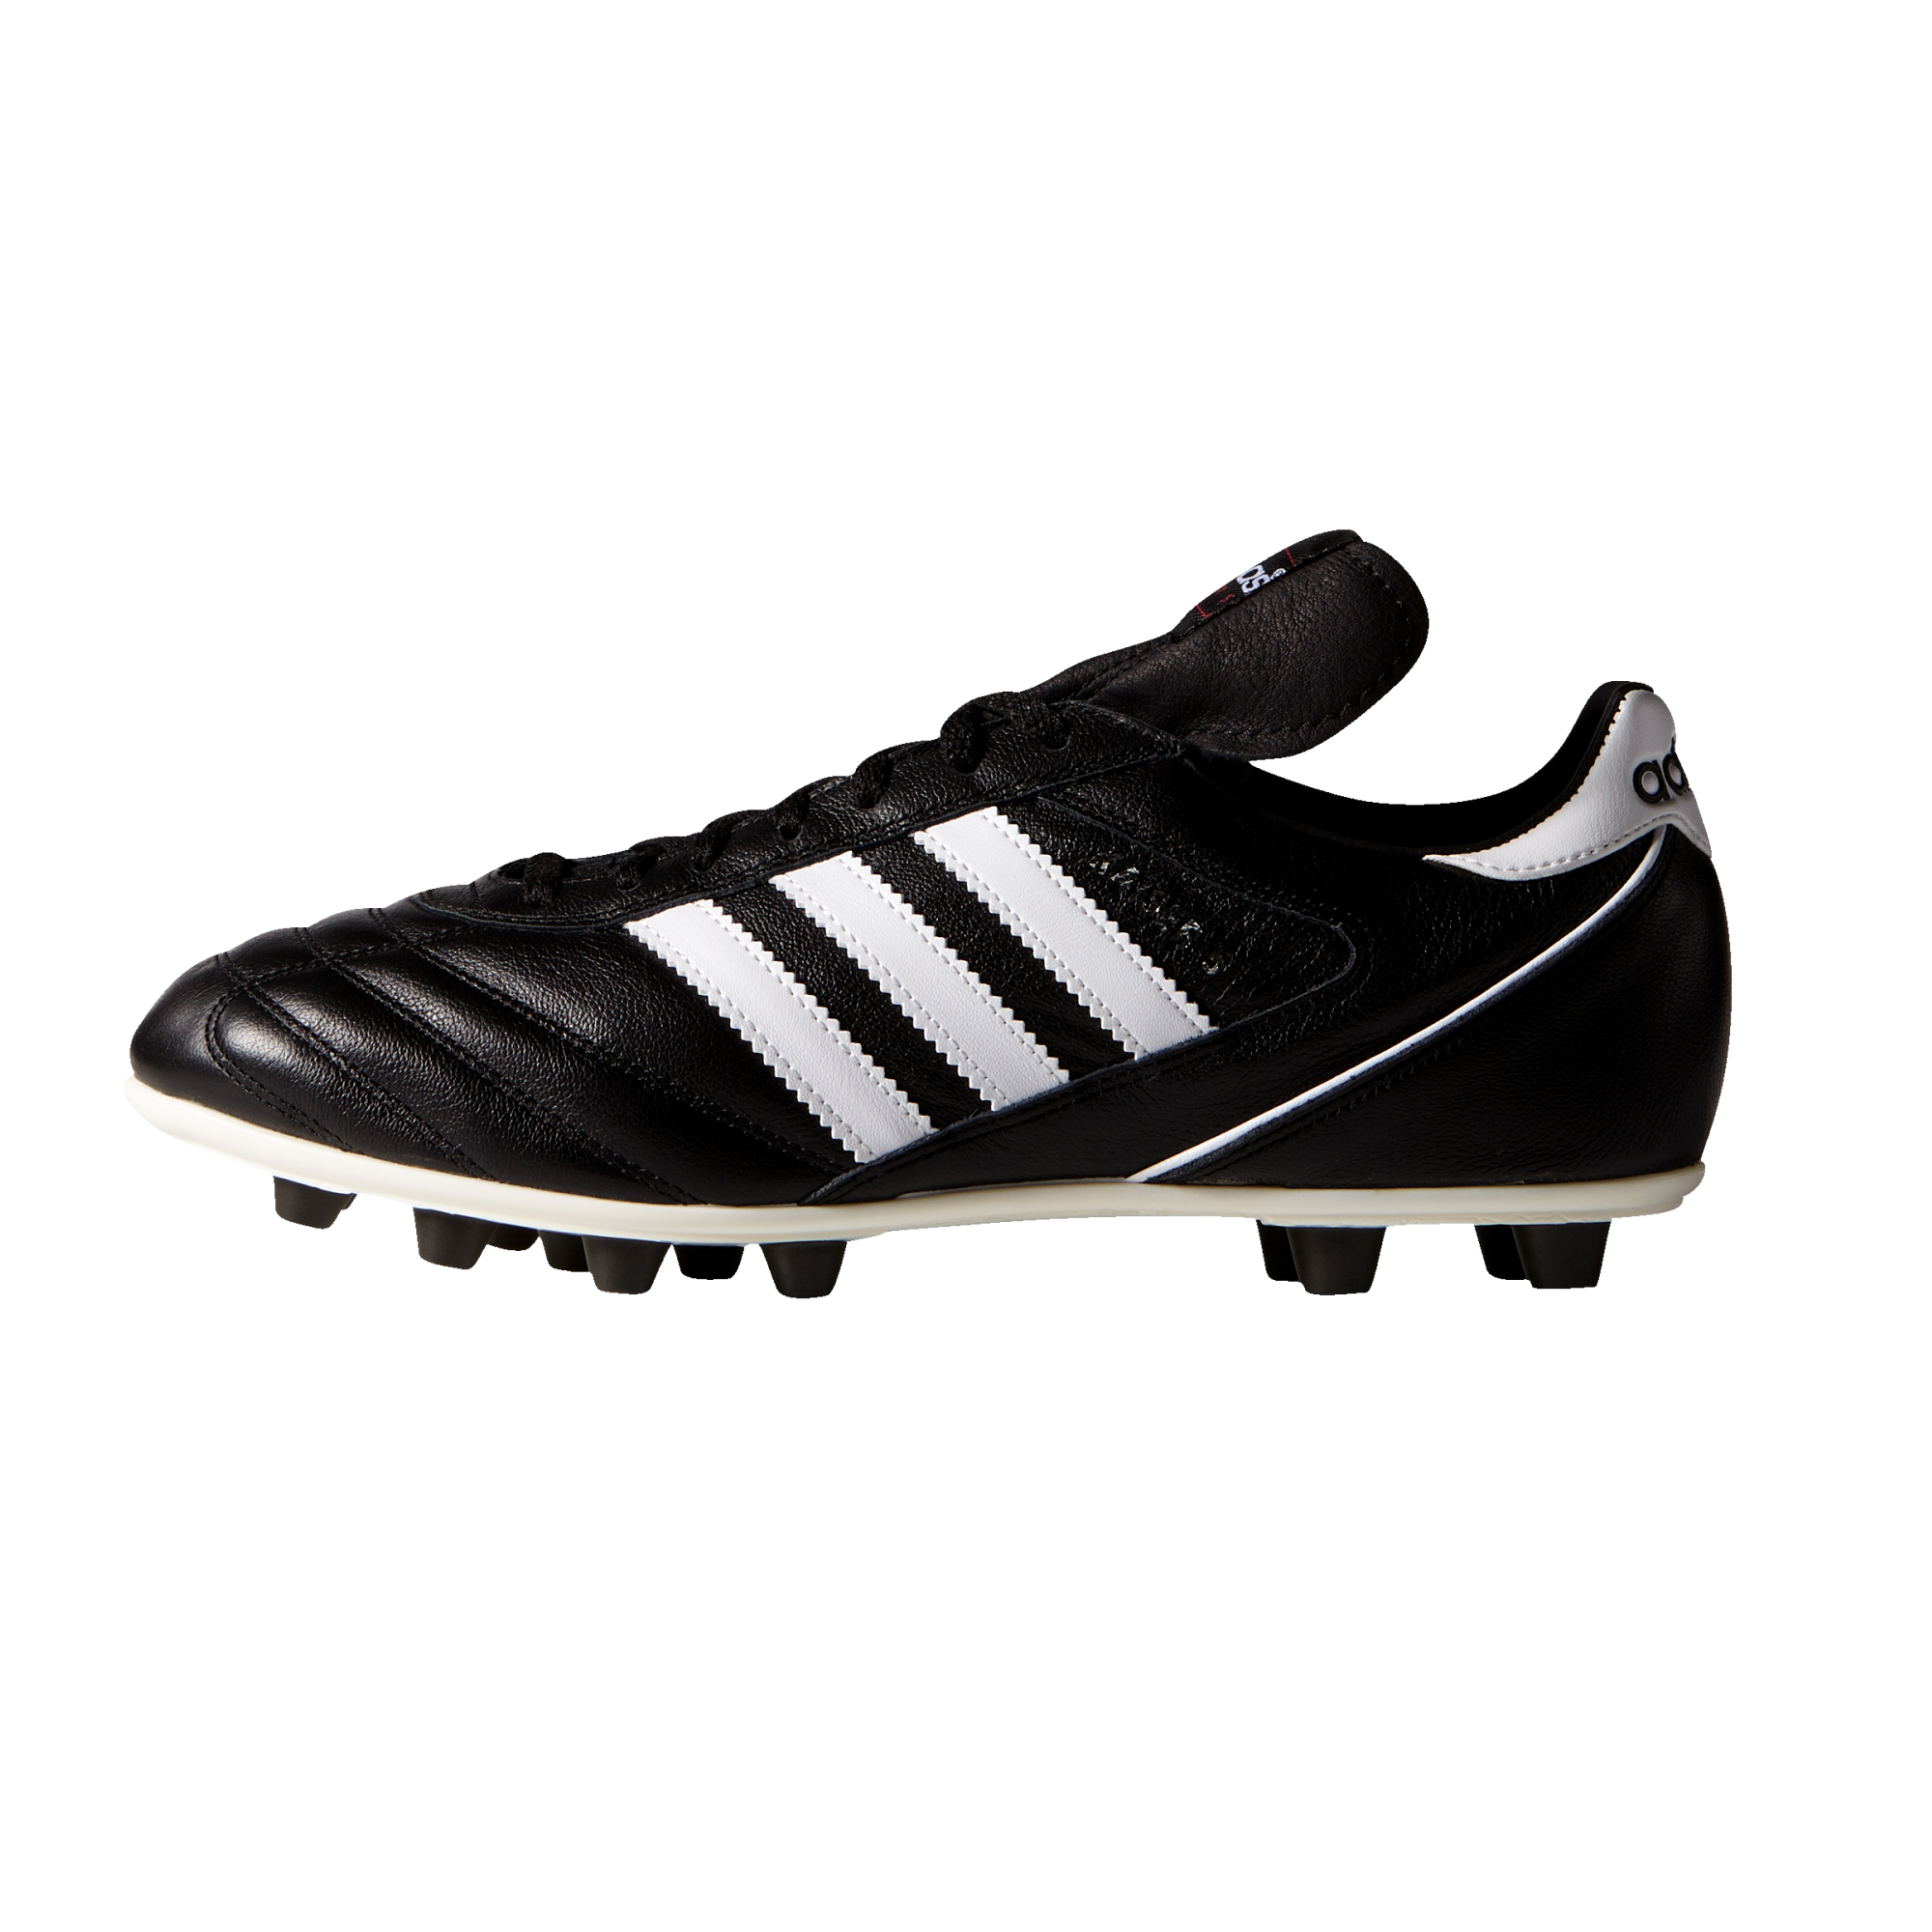 official photos 98bca a436b adidas-Kaiser-5-Liga-FG-Firm-Ground-Mens-